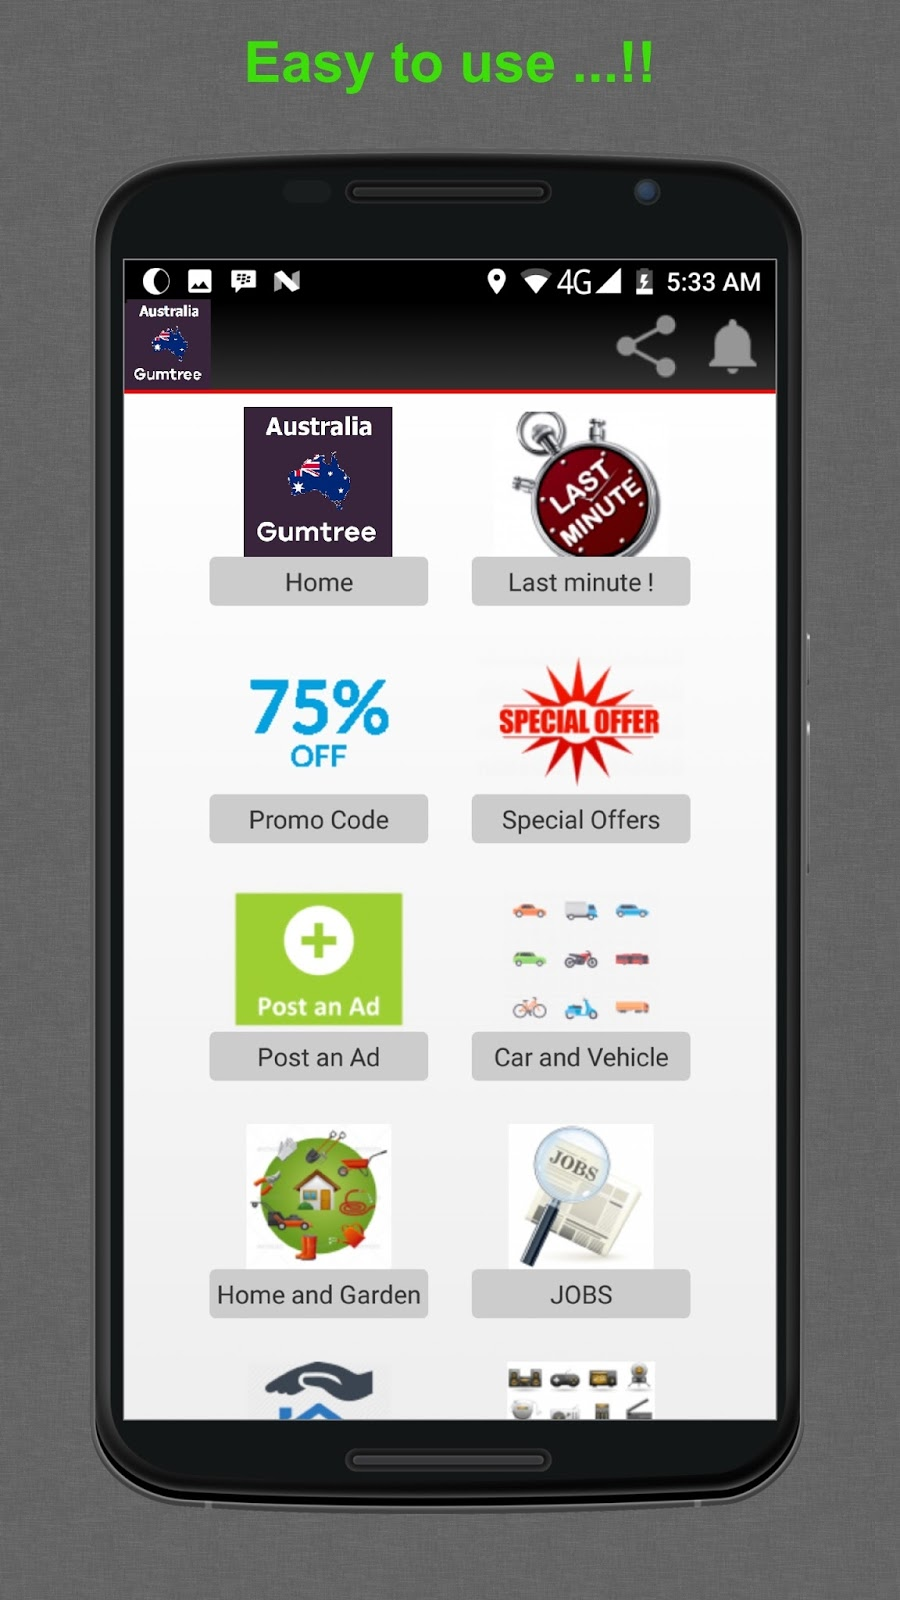 Gumtree Offers and Promotion